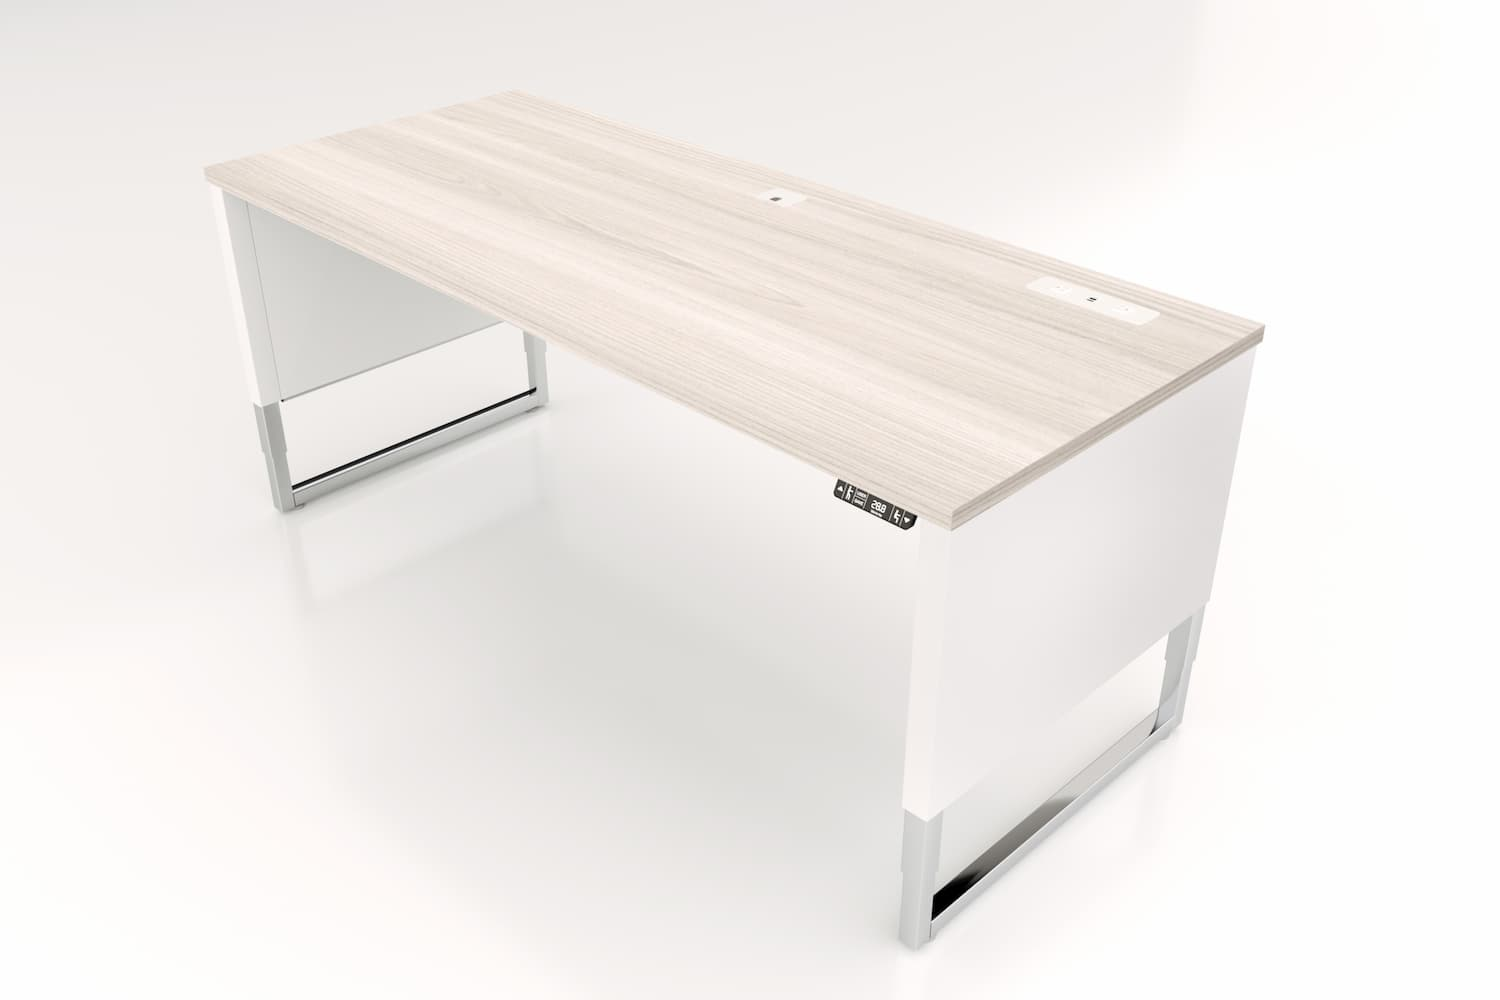 Advent-Desk-ADV-7230-WH-Custom-Top-1